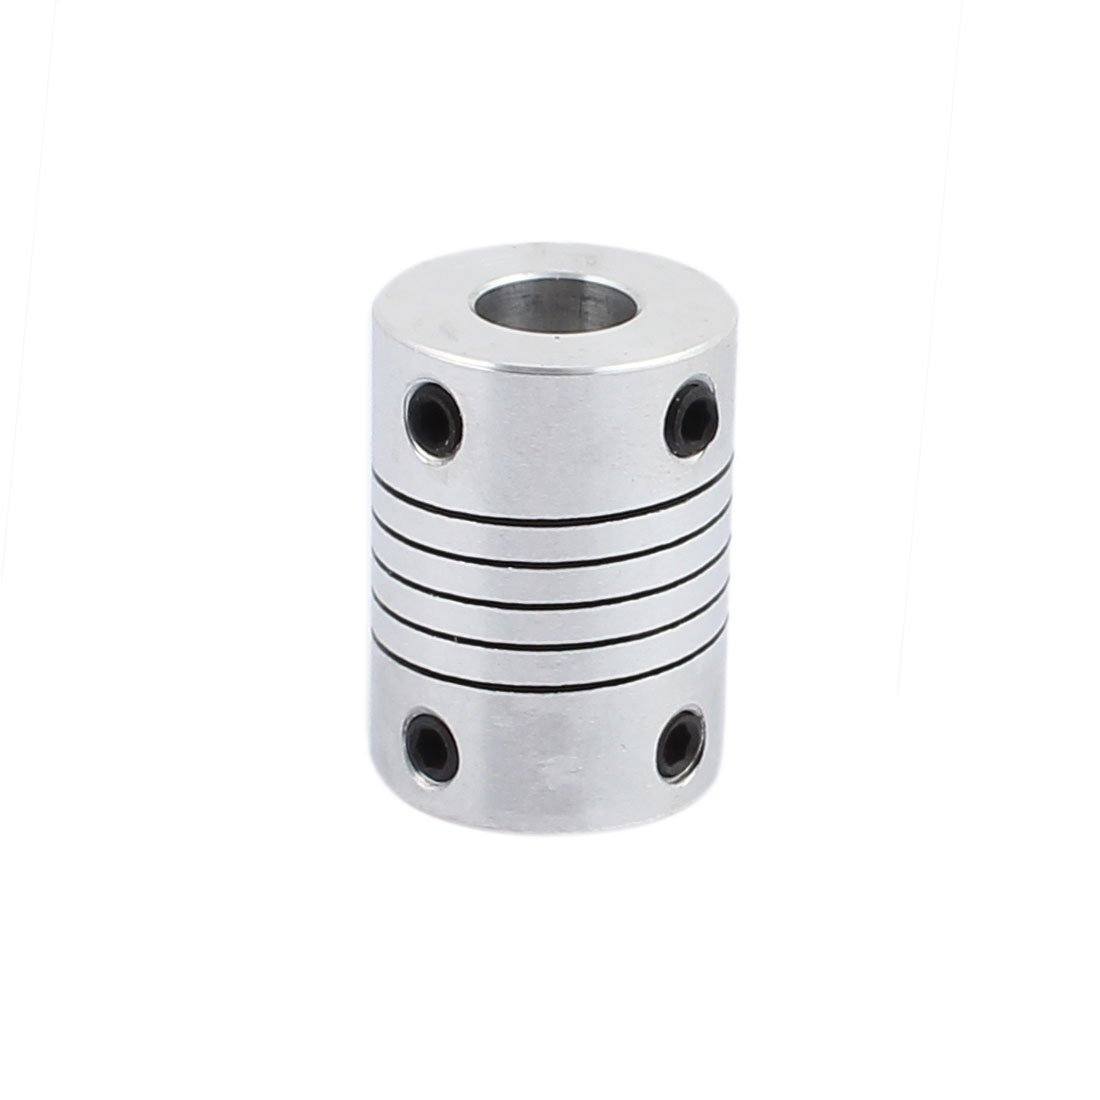 uxcell 5mm to 6.35mm Shaft Coupling 25mm Length 18mm Diameter Stepper Motor Coupler Aluminum Alloy Joint Connector for 3D Printer CNC Machine DIY Encoder SYNCE016622